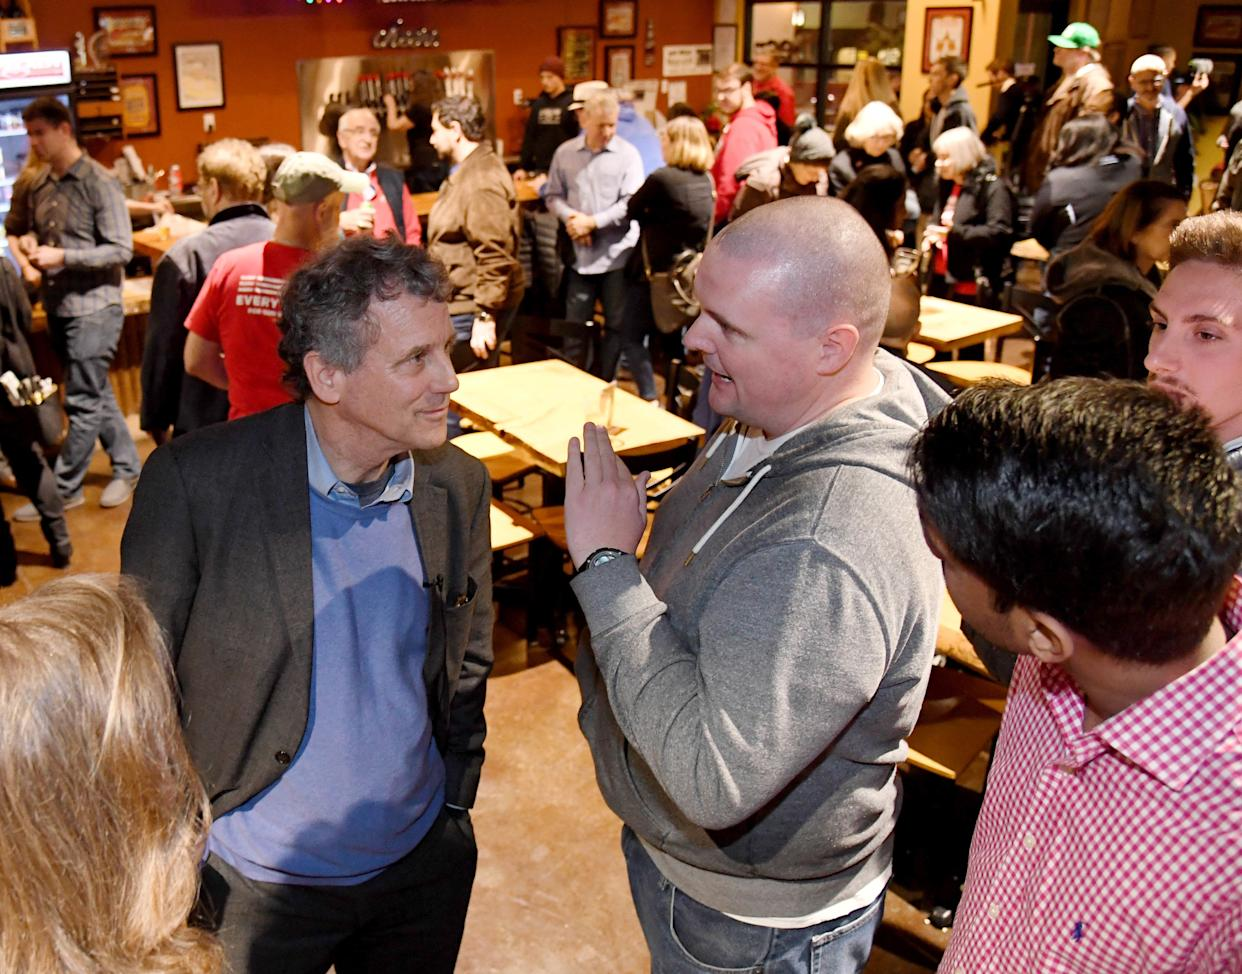 Sherrod Brown talks with Scott Adams at Lovelady Brewing on Feb. 23. (Photo: Ethan Miller/Getty Images)